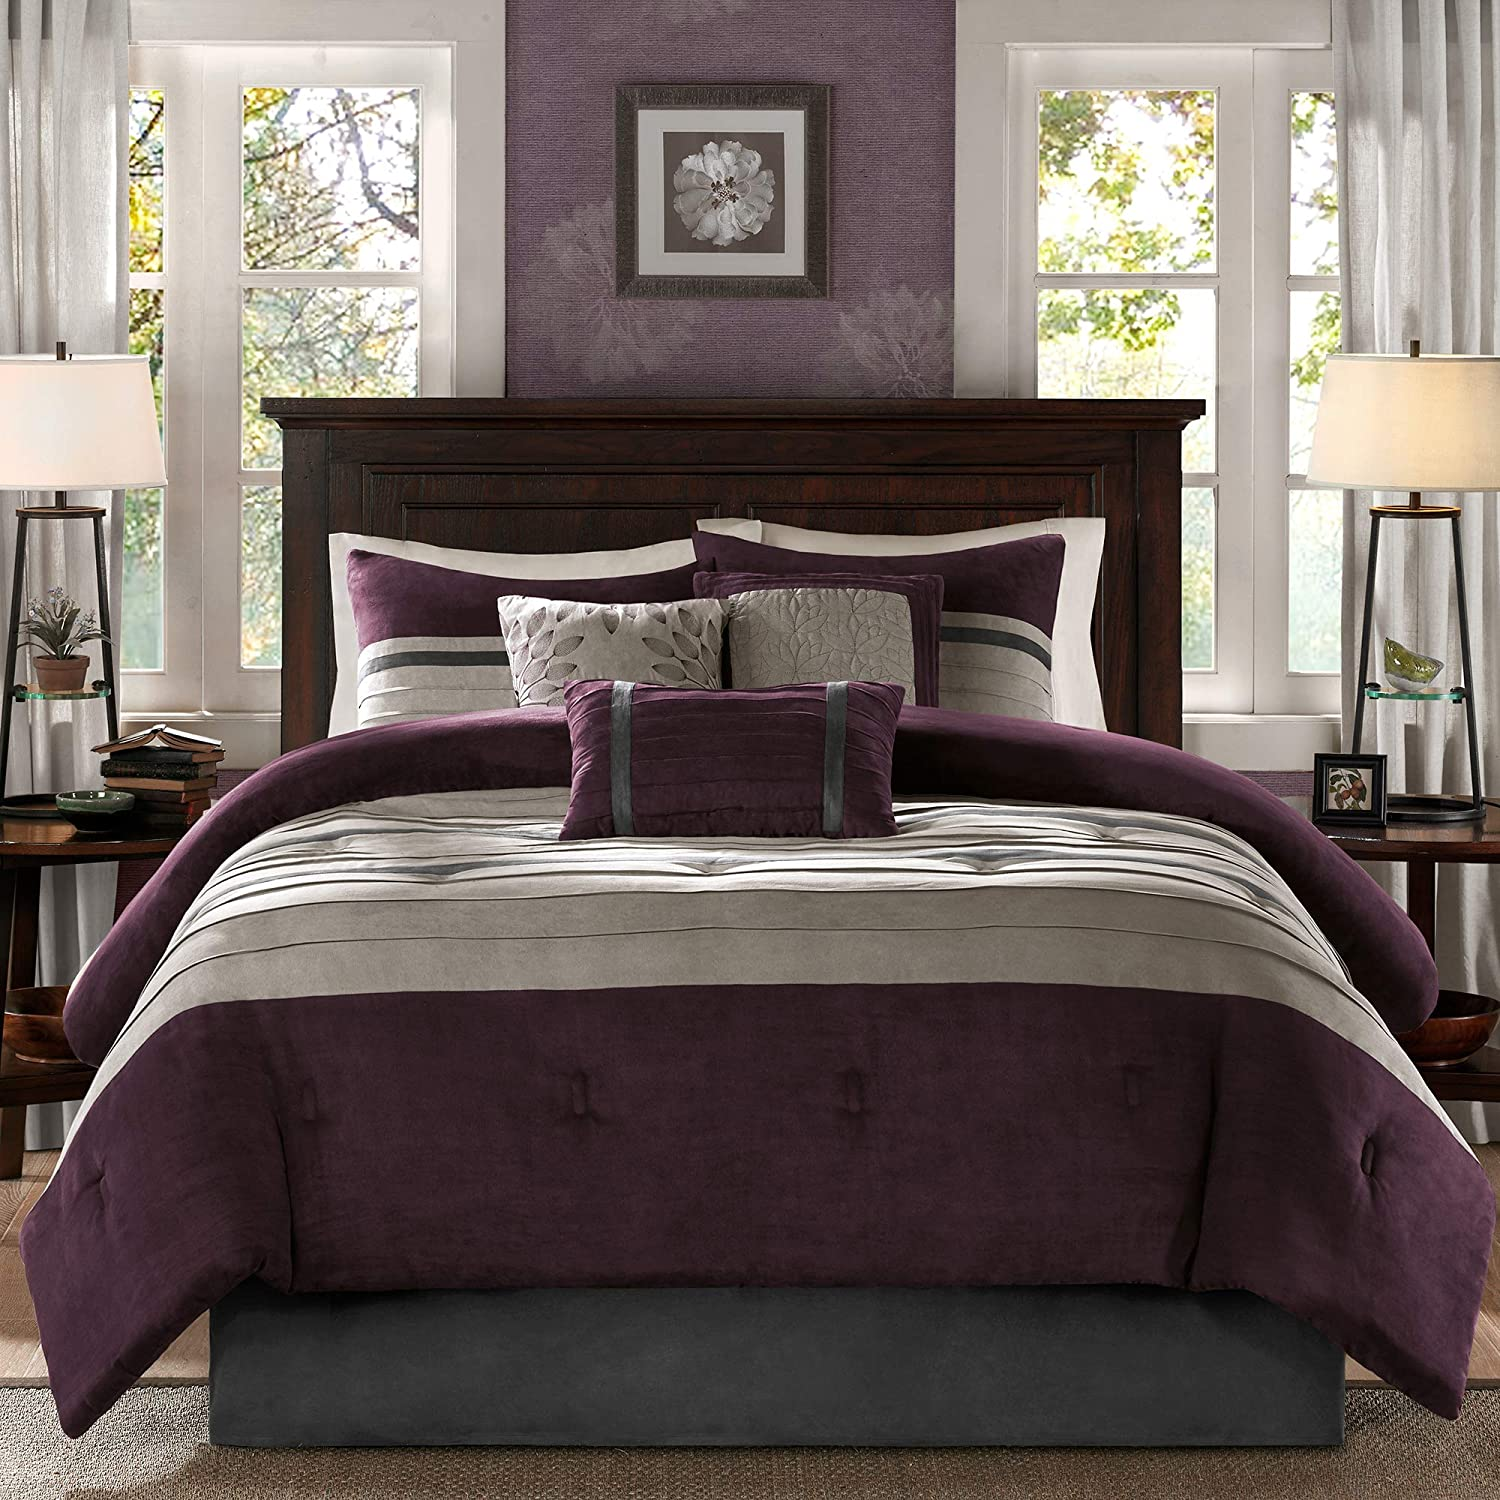 Madison Park - Palmer 7 Piece Comforter Set - Plum - Full - Pieced Microsuede - Includes 1 Comforter, 3 Decorative Pillows, 1 Bed Skirt, 2 Shams